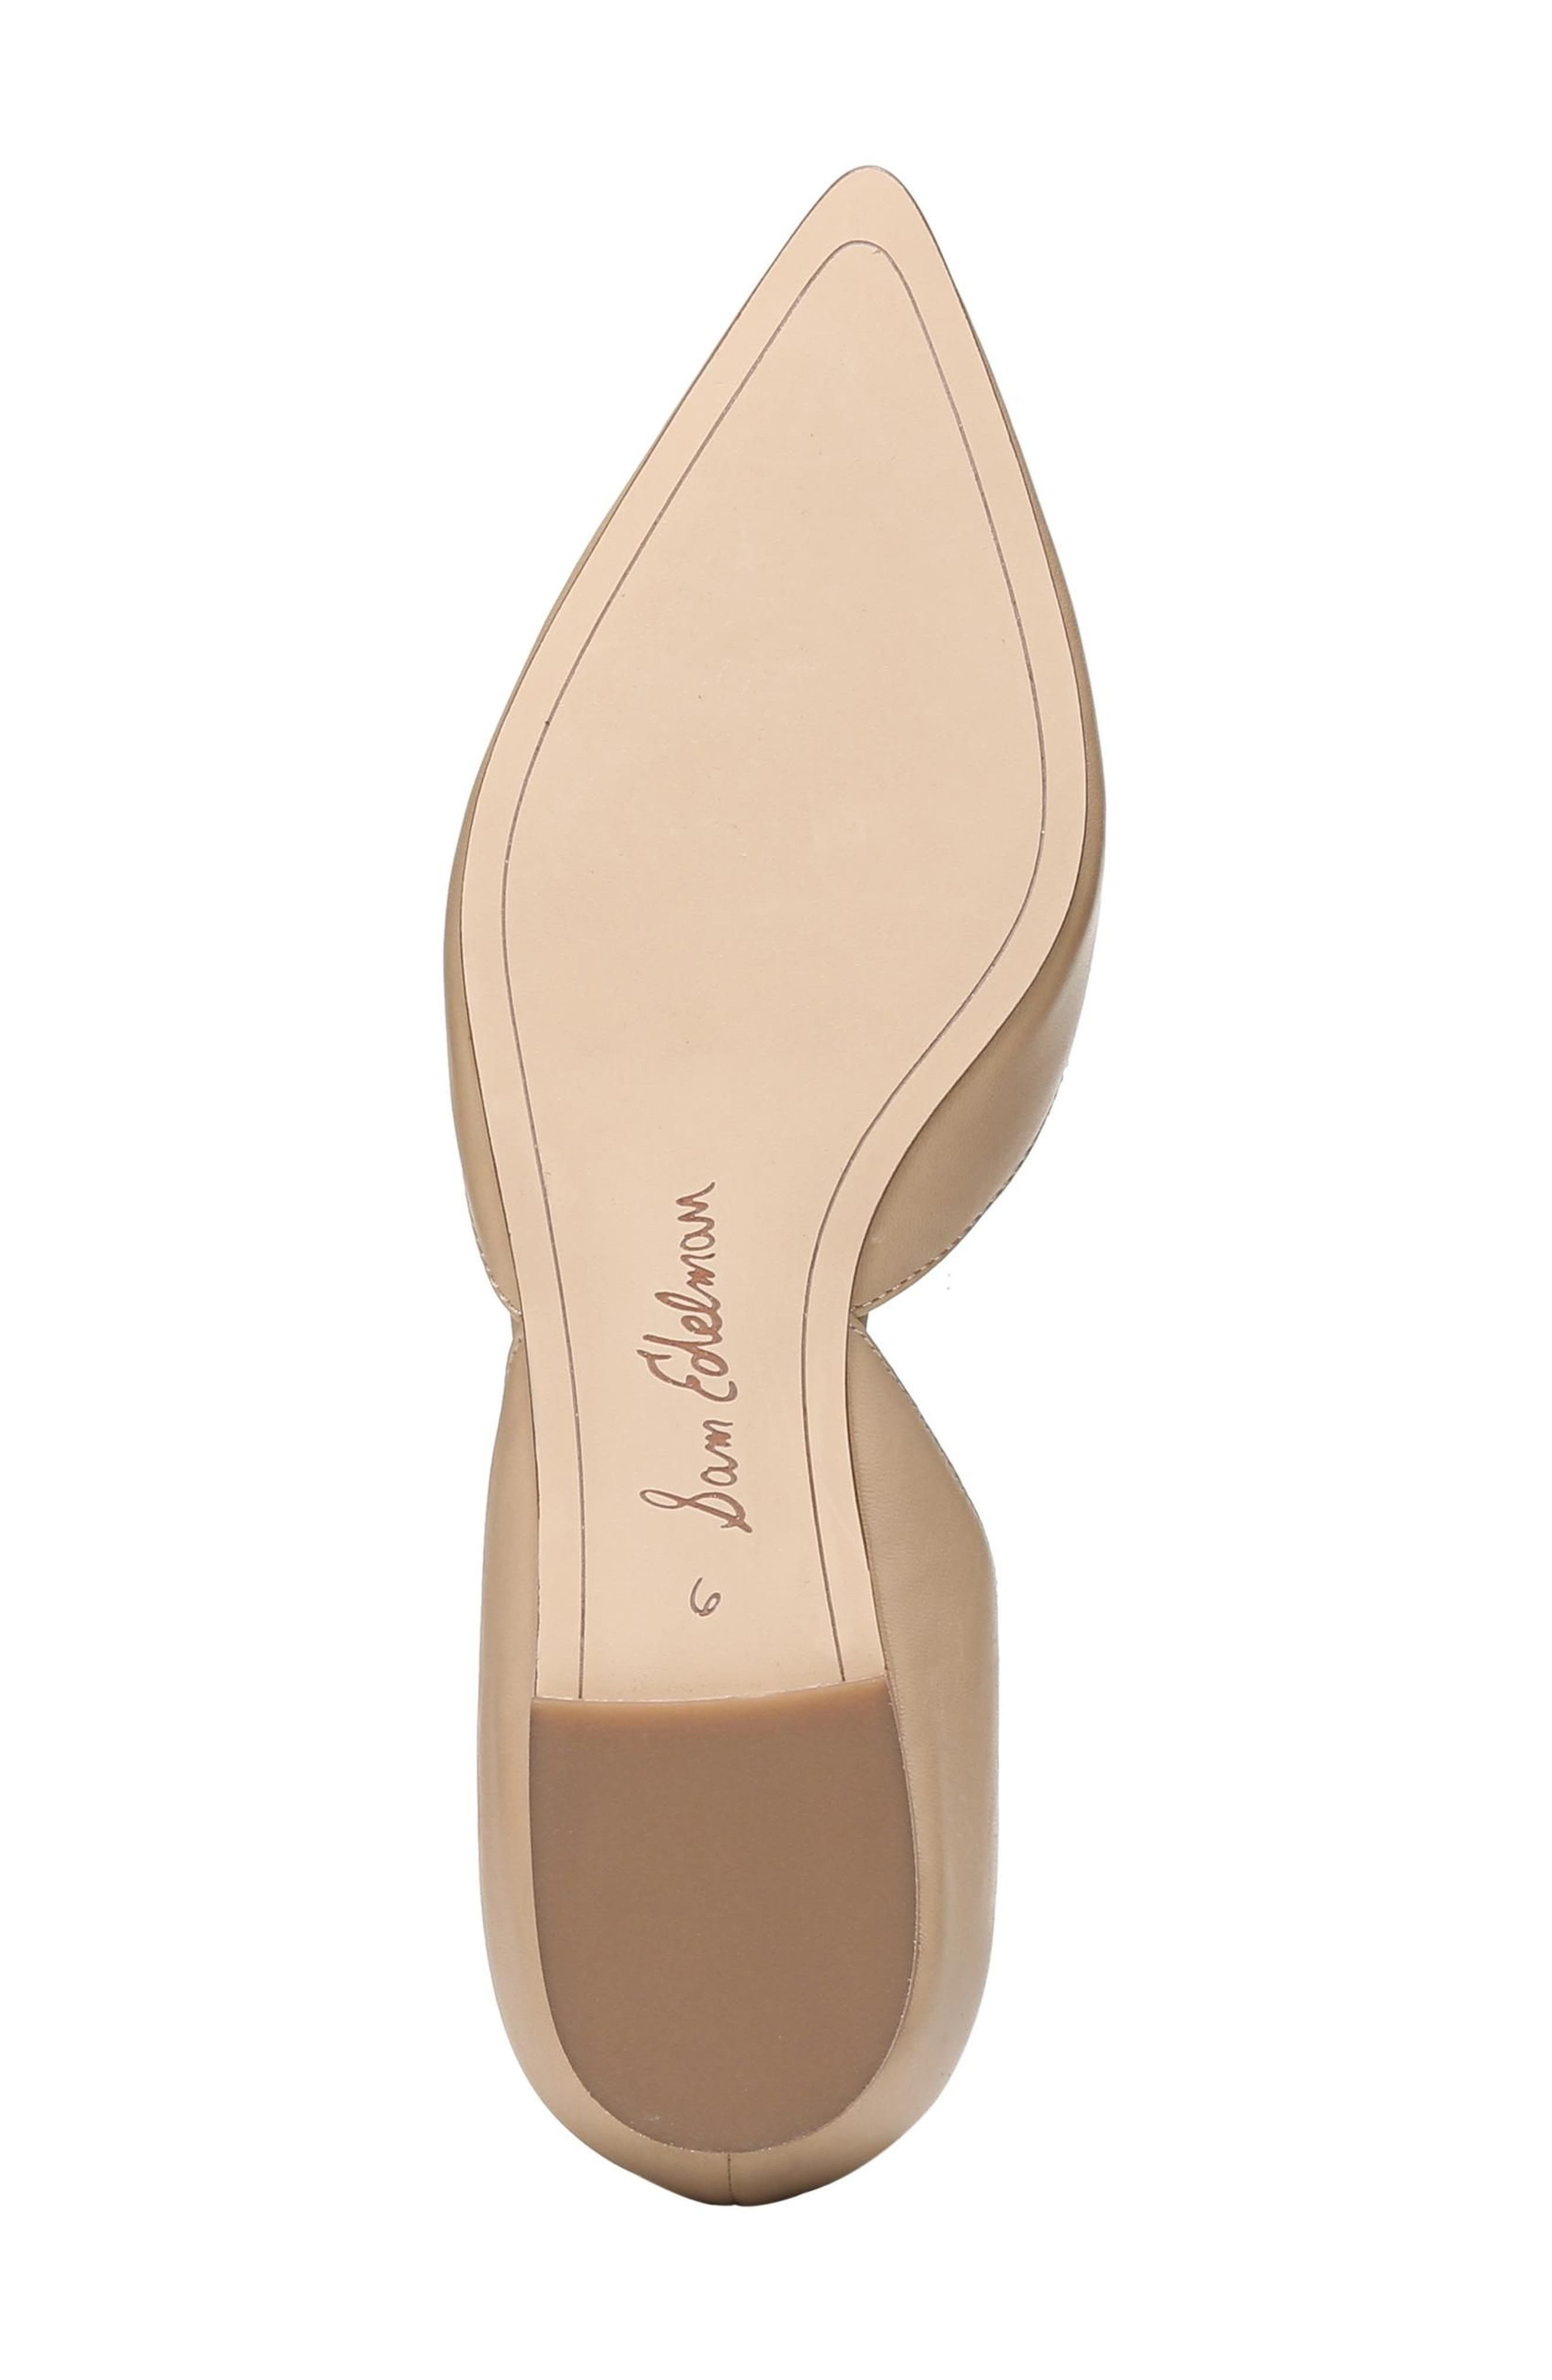 SAM EDELMAN, Rodney Pointy Toe d'Orsay Flat, Alternate thumbnail 6, color, CLASSIC NUDE LEATHER